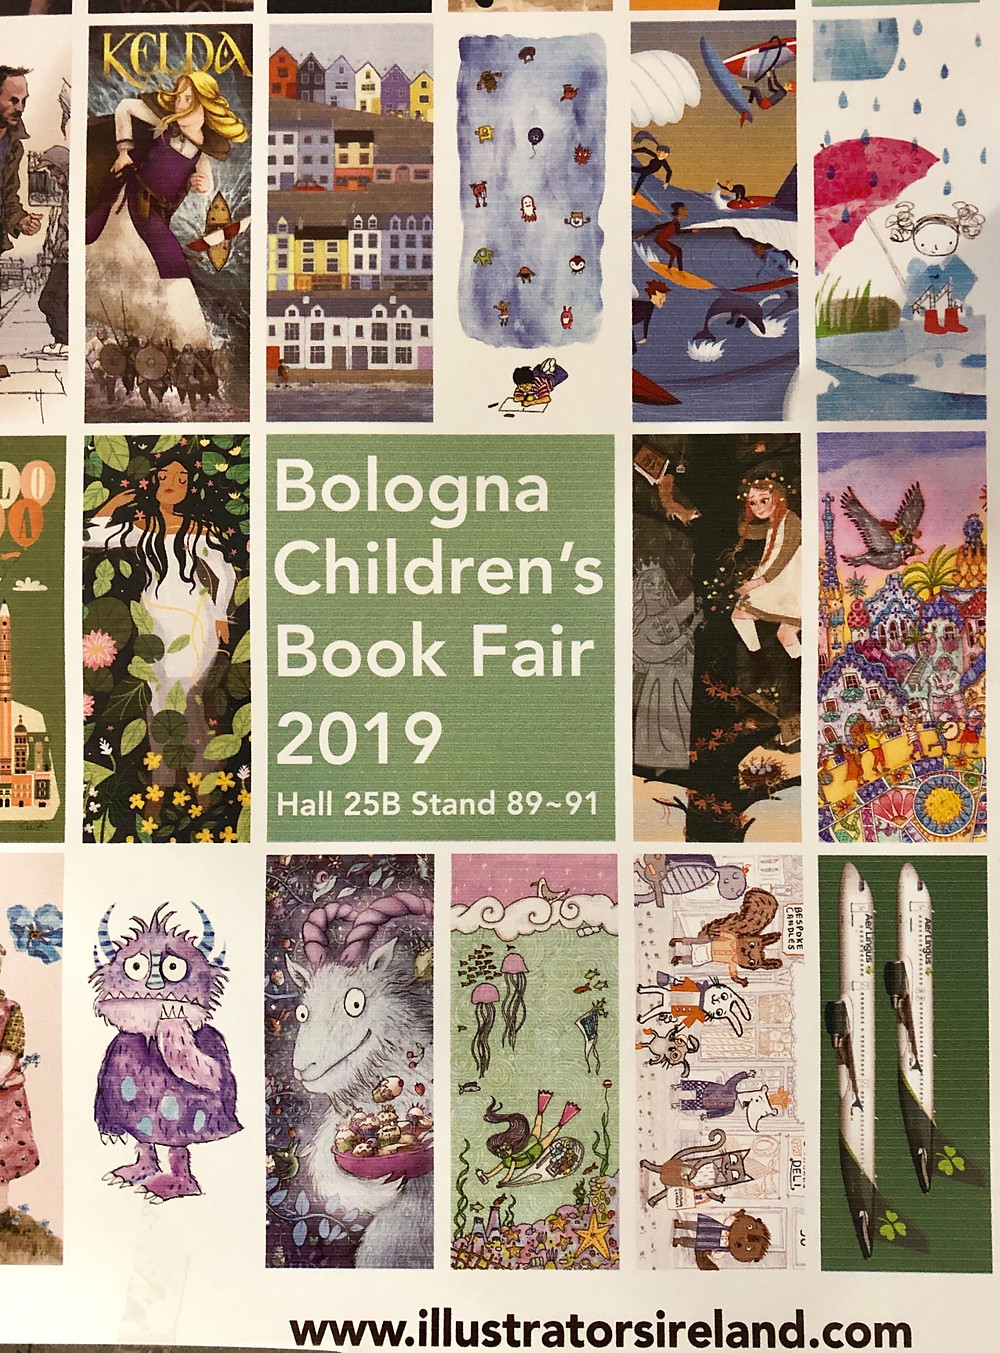 A selection of Illustrations on a poster for Illustrators of Ireland at the Bologna Book Fair